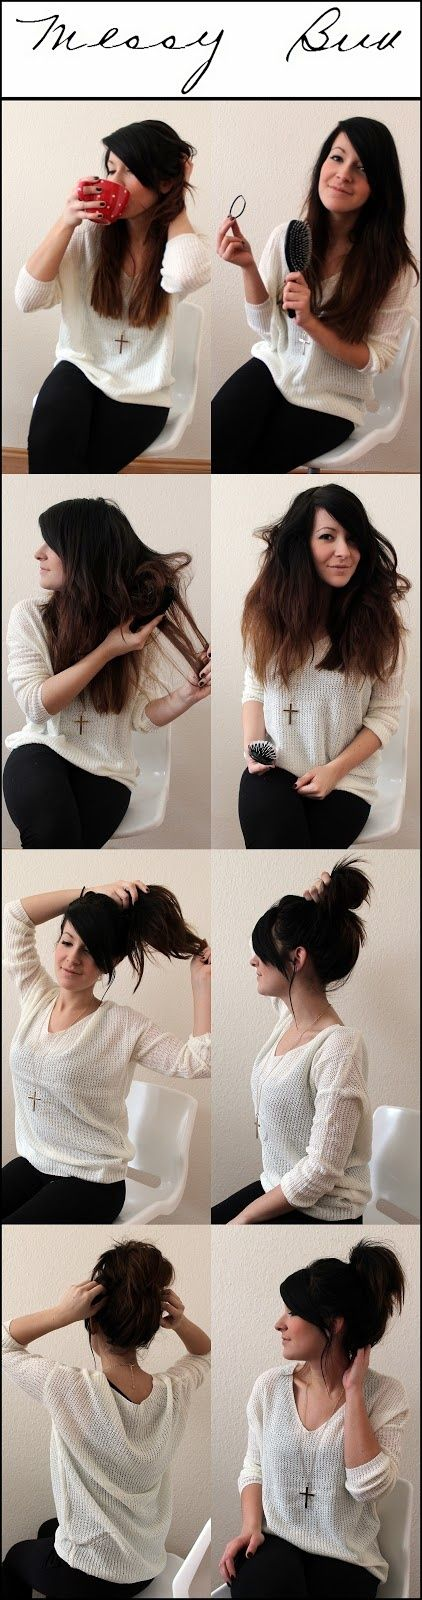 Messy bun tutorial. Image via Popular Hair Styles on Tumblr - seriously, i miss my long hair, can't wait to have it back so i can try this!